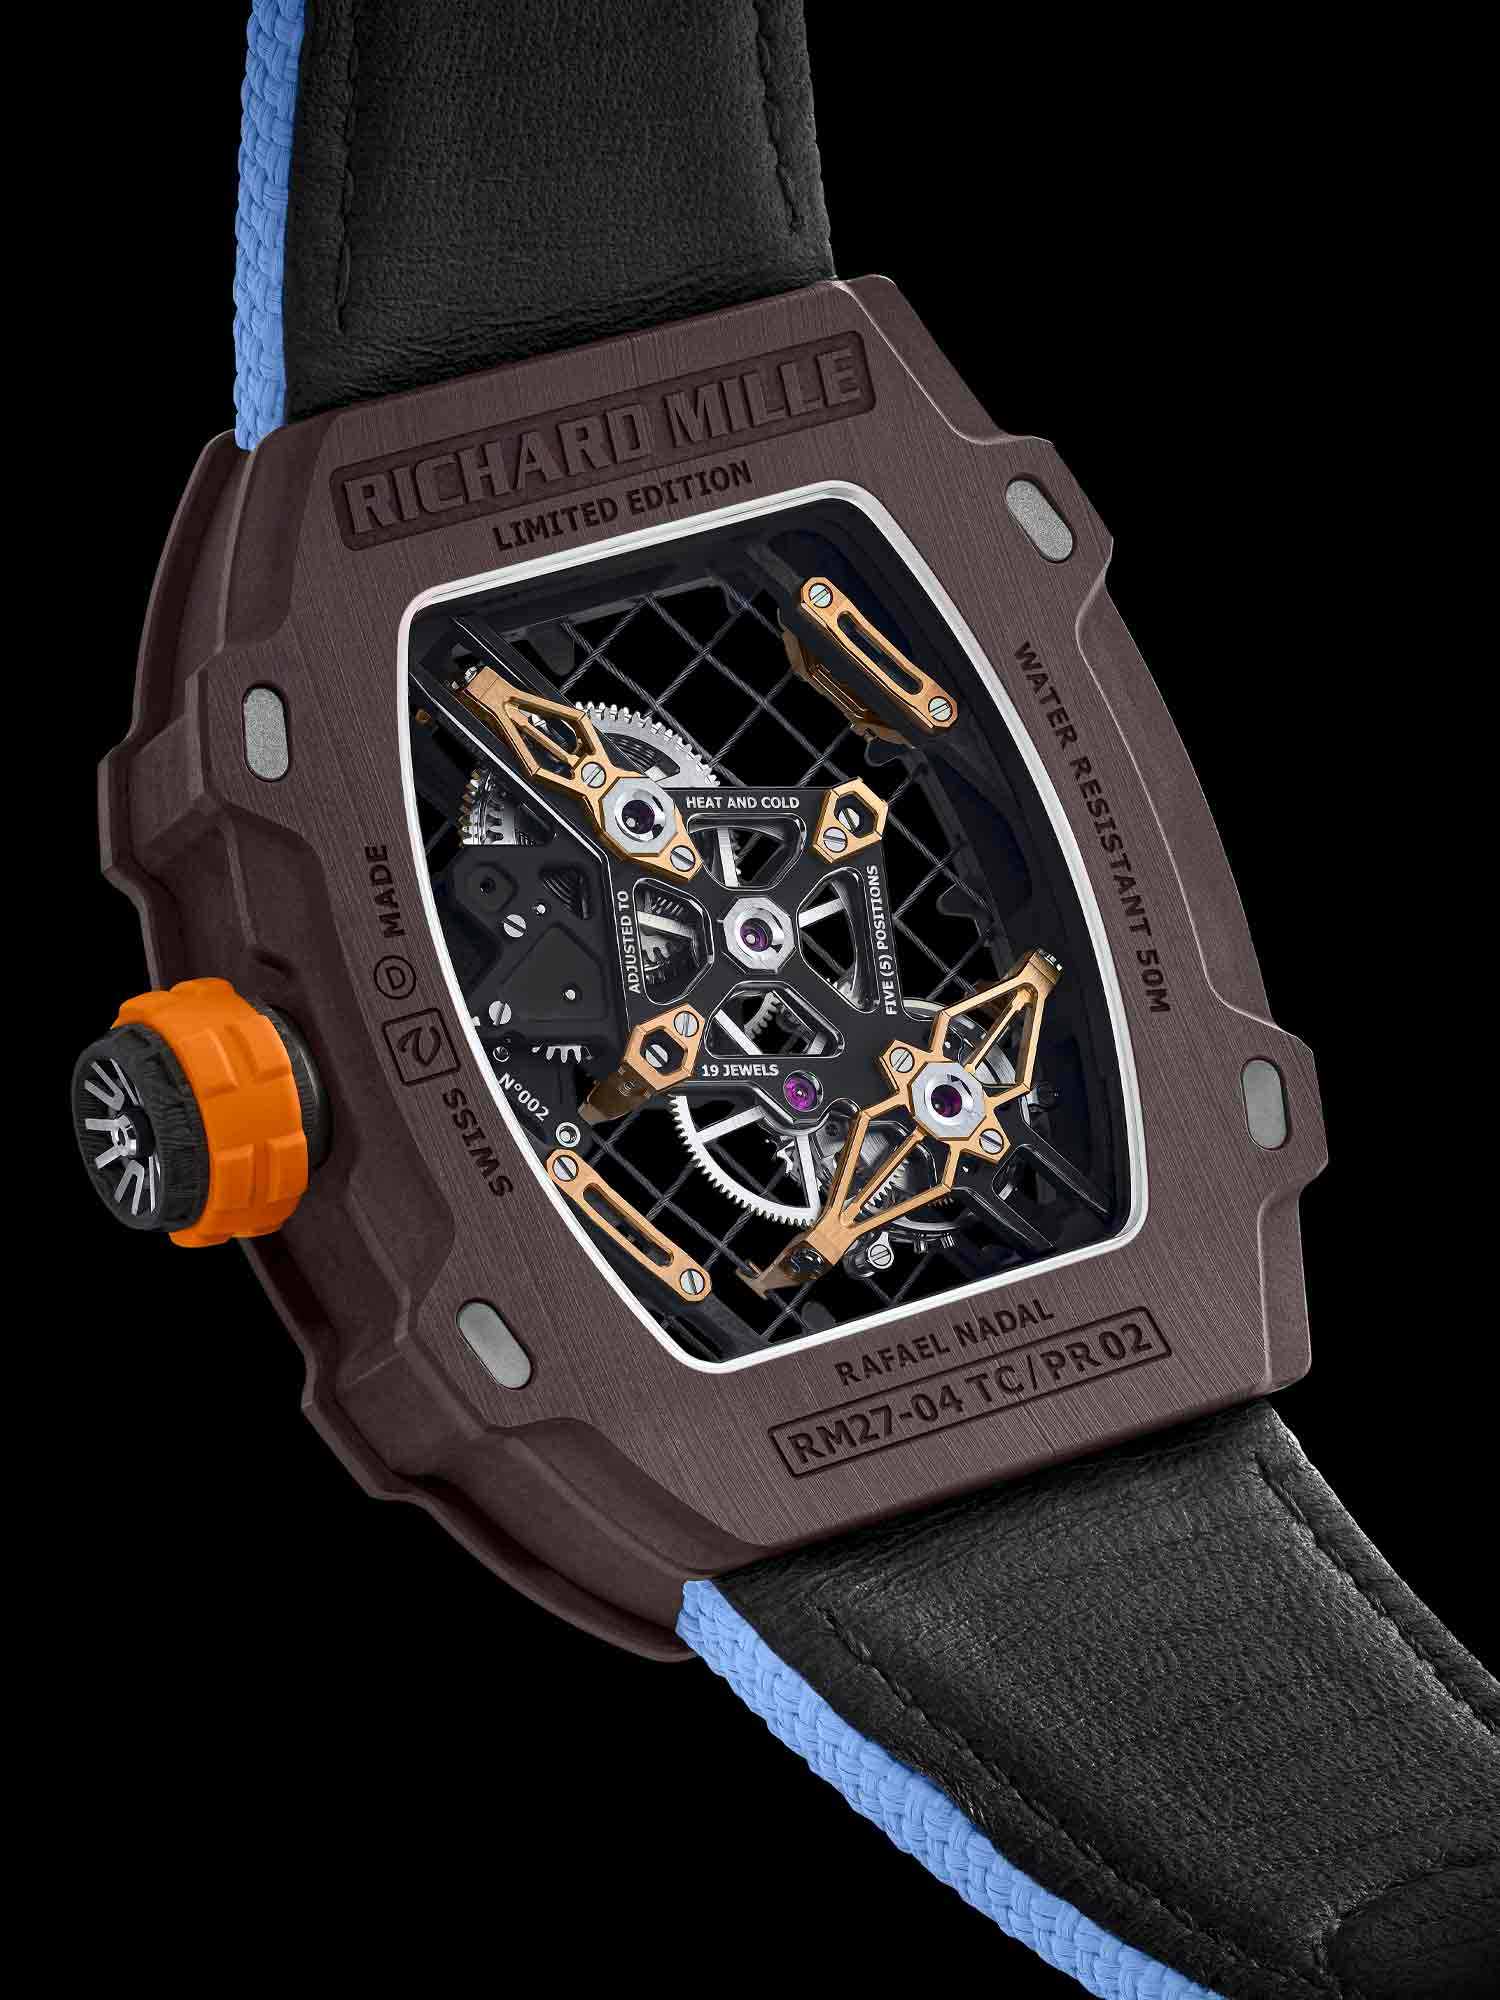 Rm 27 04 Richard Mille Manual Winding Tourbillon Rafael Nadal